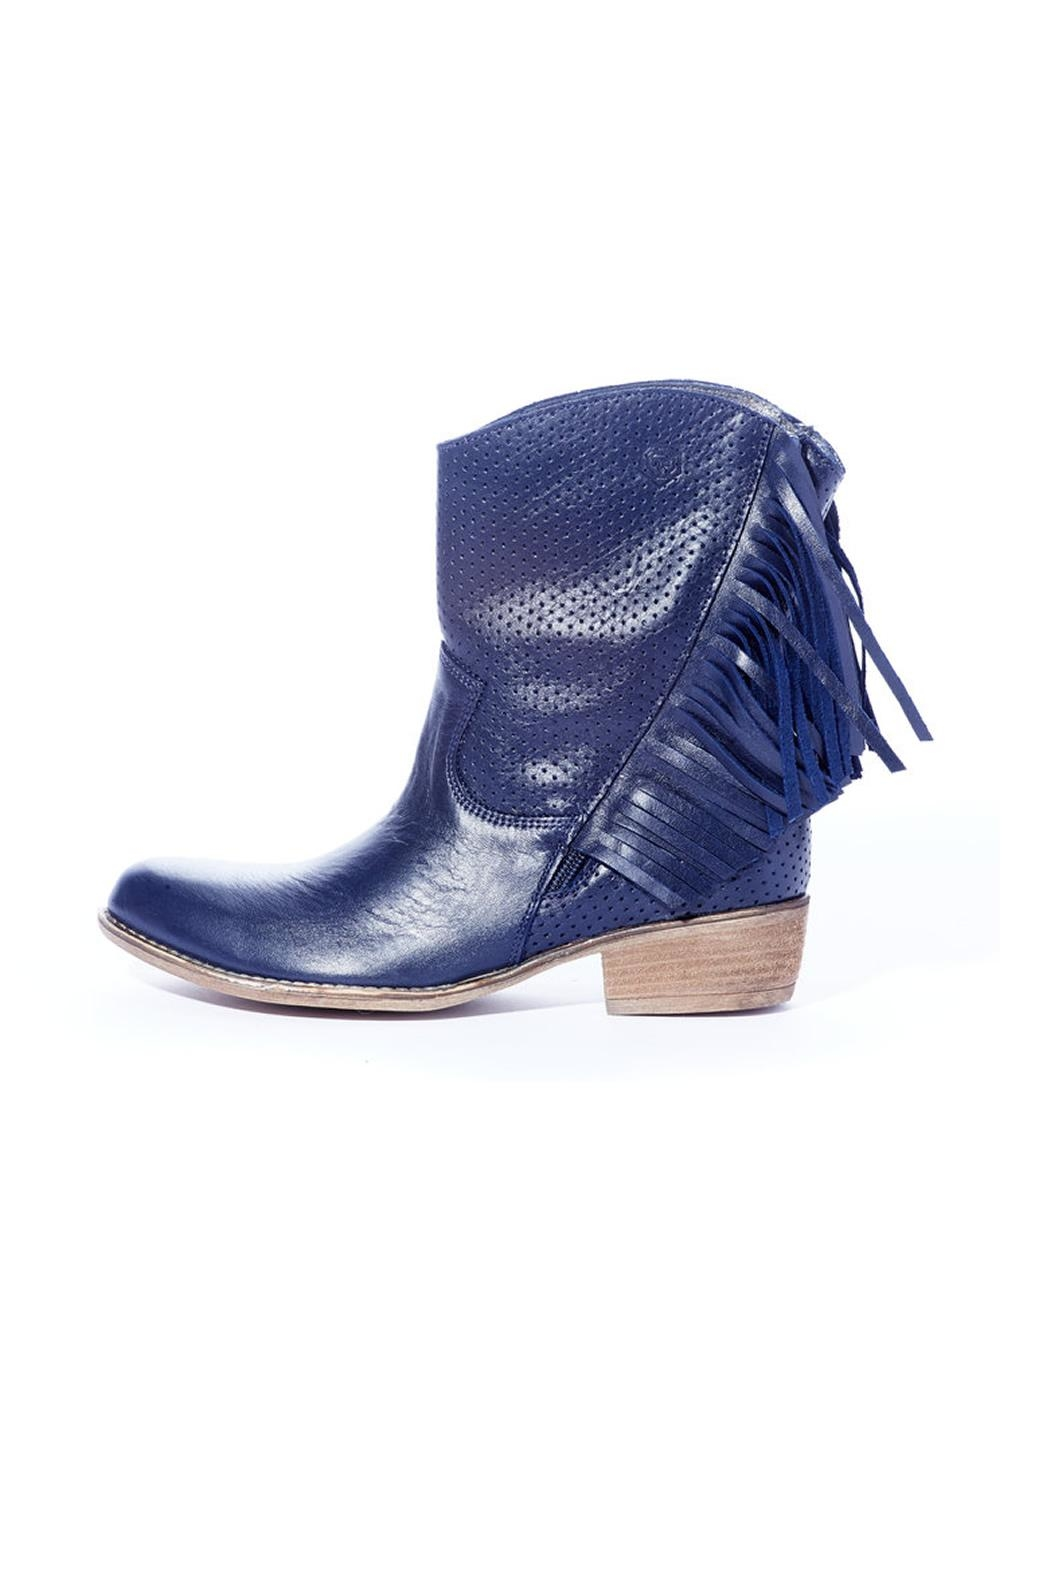 Rebel With Cause Navy Fringe Boot - Front Full Image